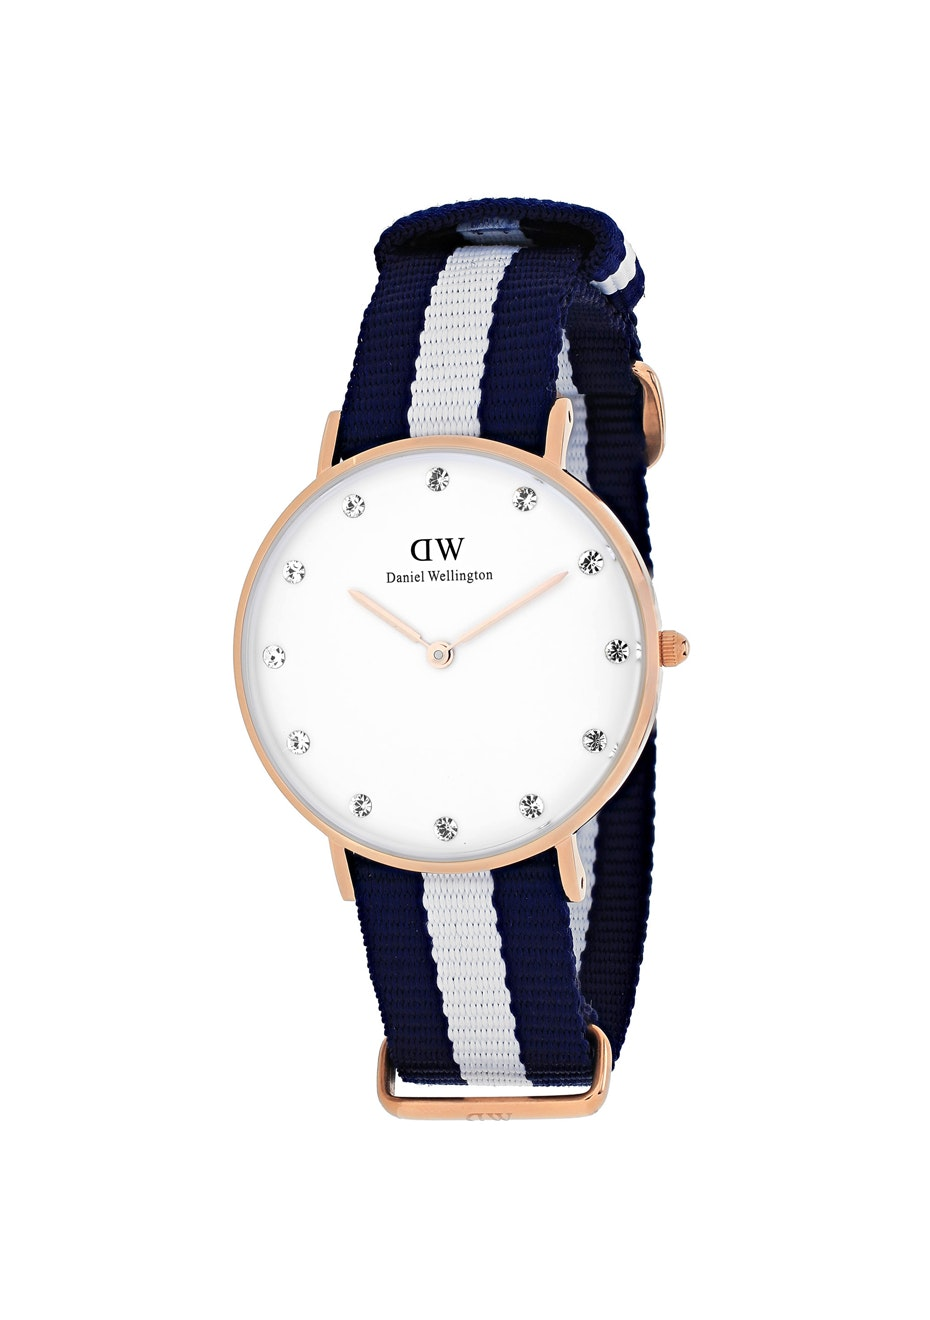 Daniel Wellington Women's Classy Glasgow - White/Two-tone Navy B